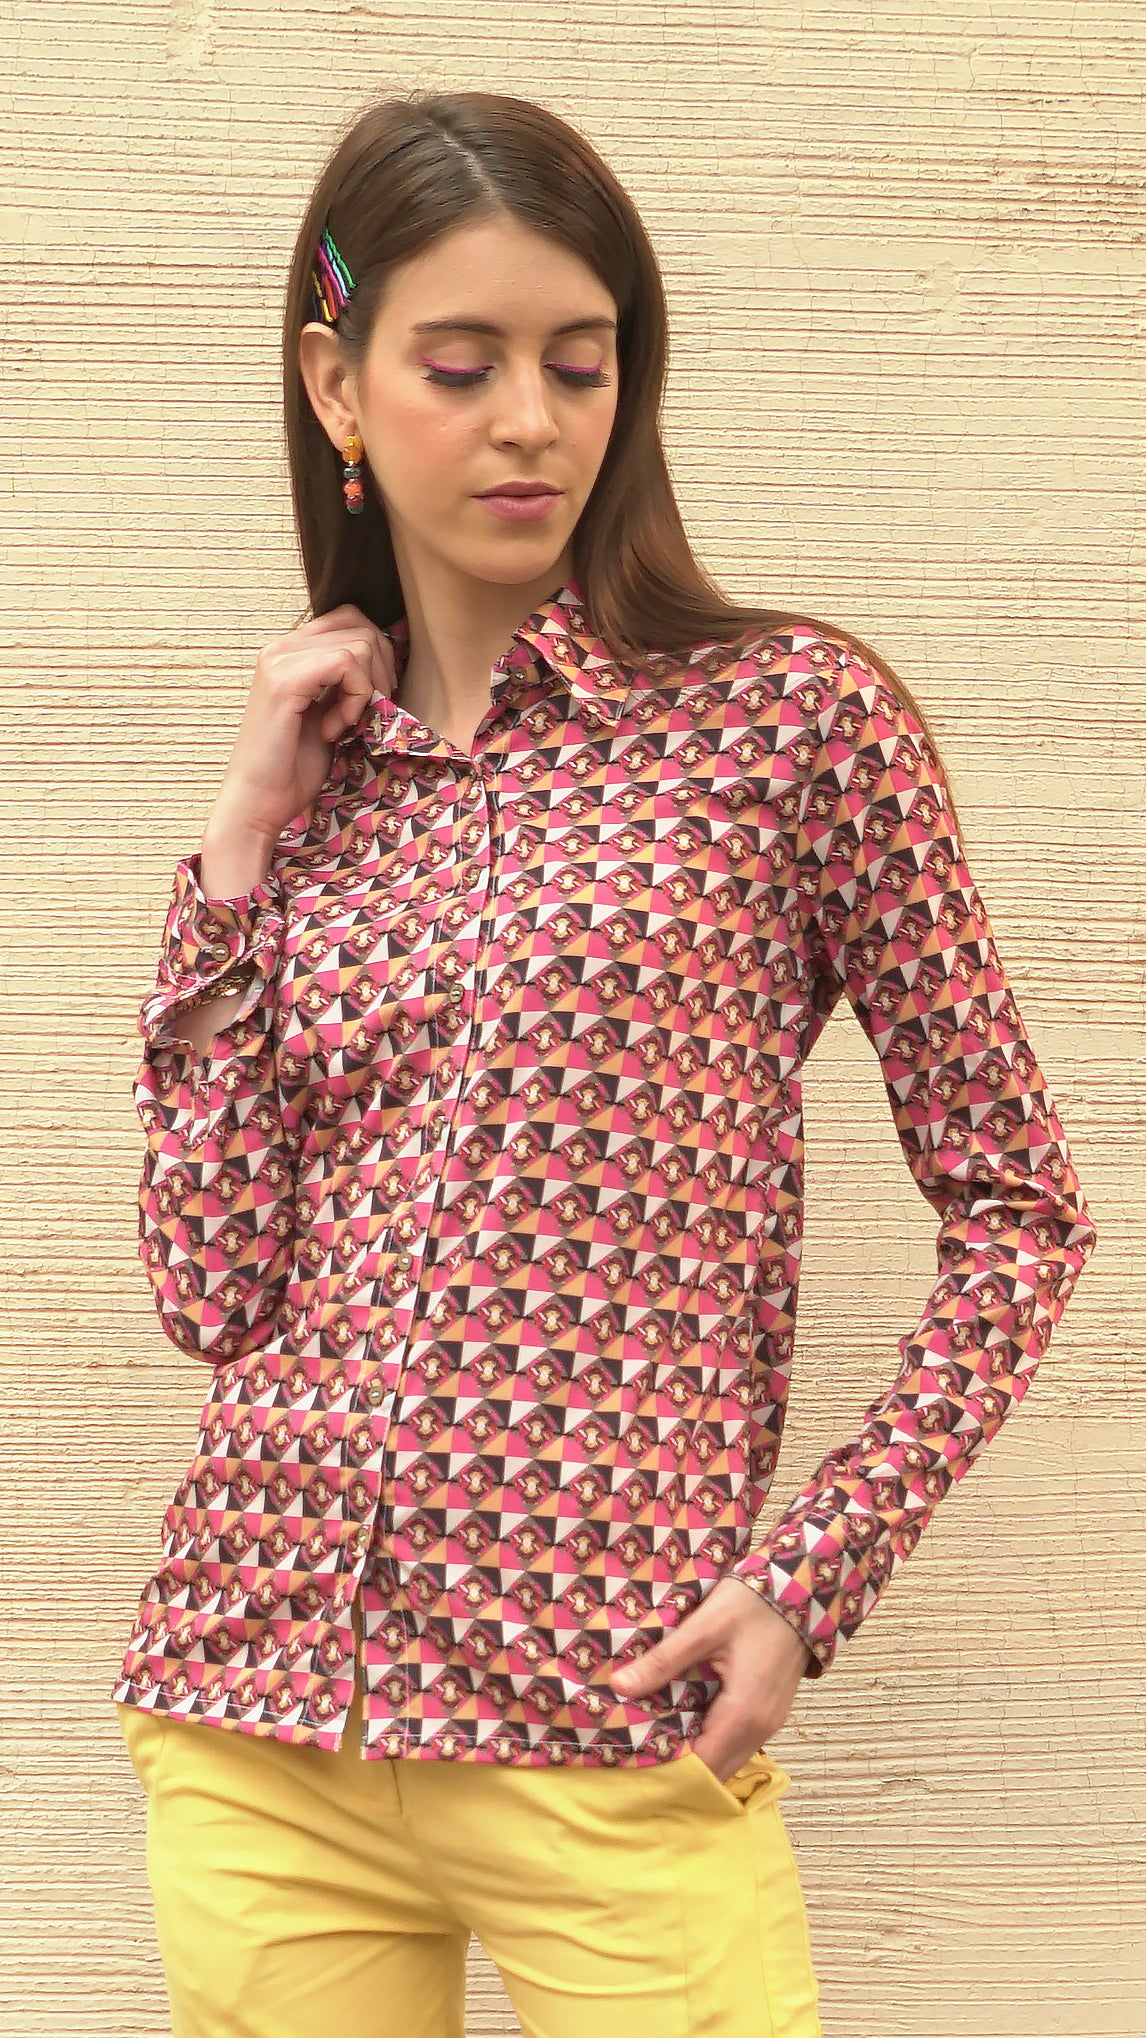 R-PET SIGNATURE PATANG SHIRT - AED 499